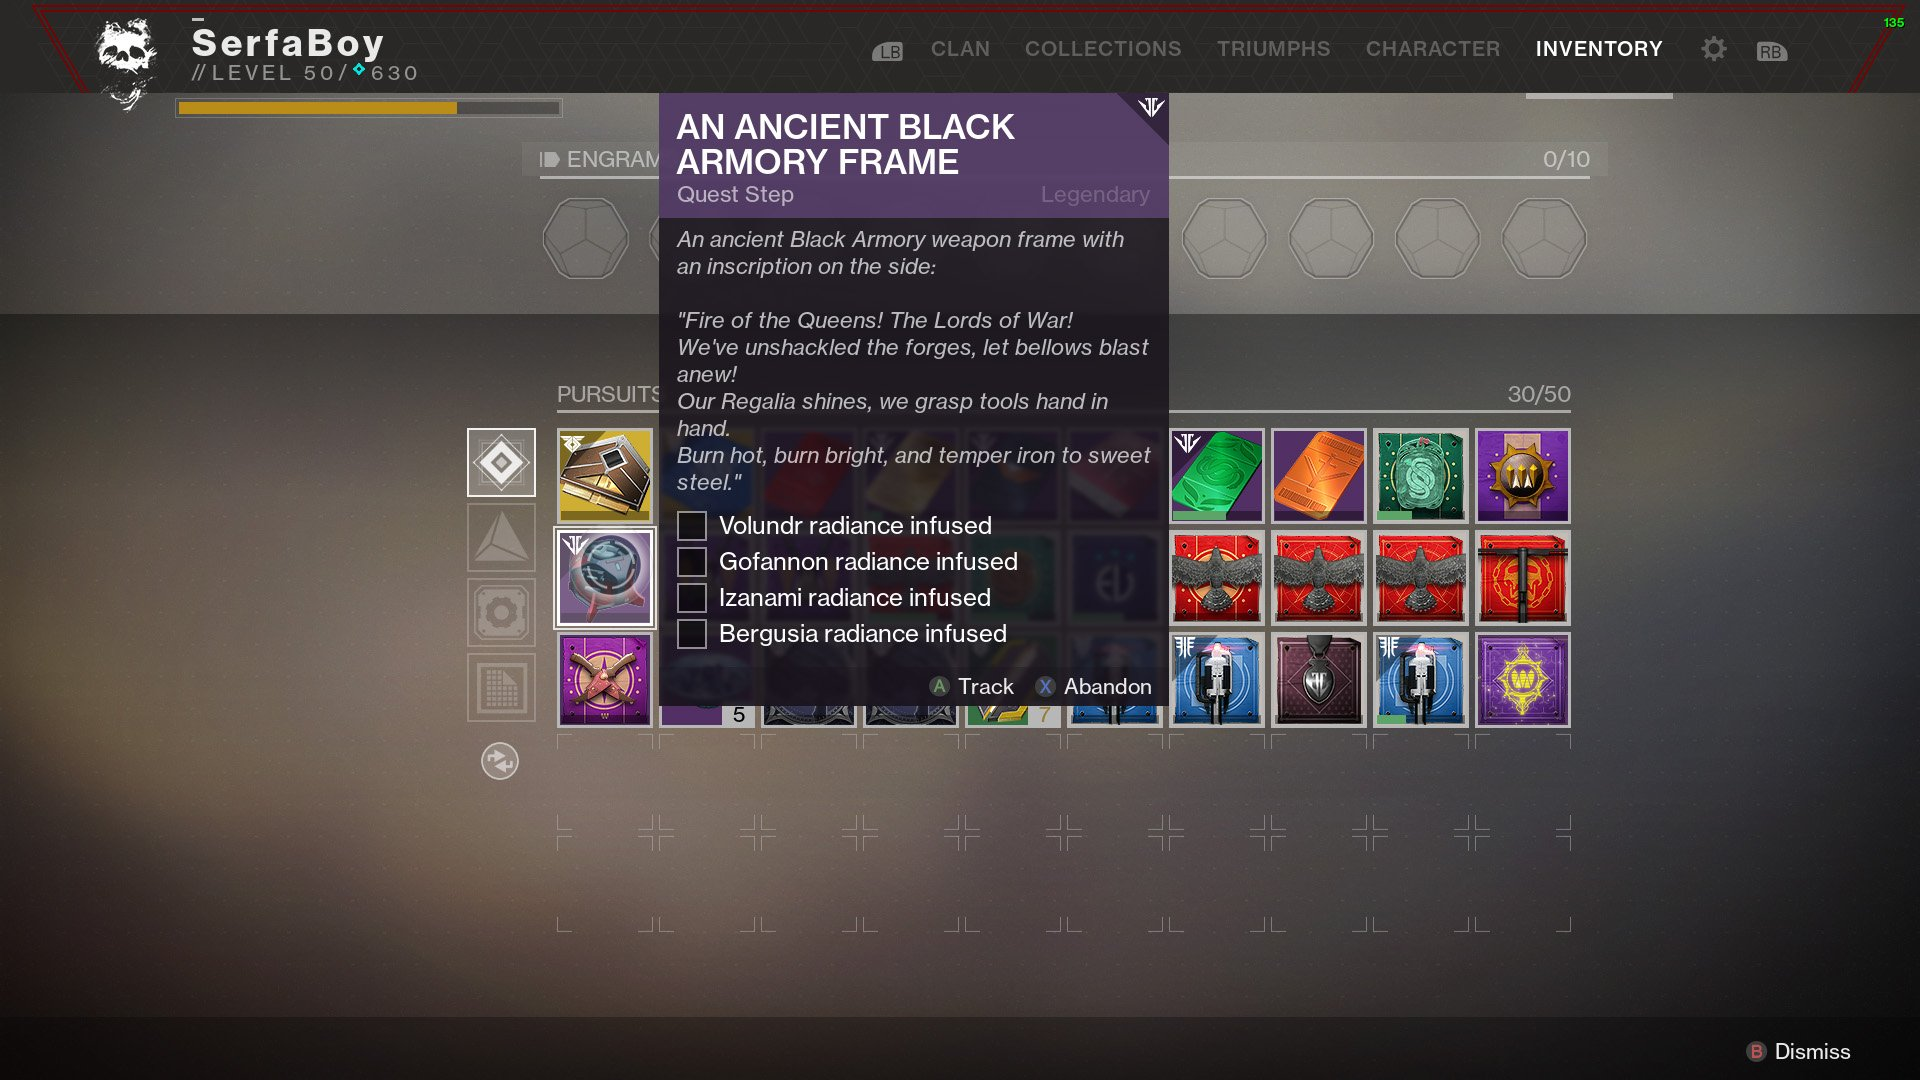 Destiny 2 An Ancient Black Armory Frame